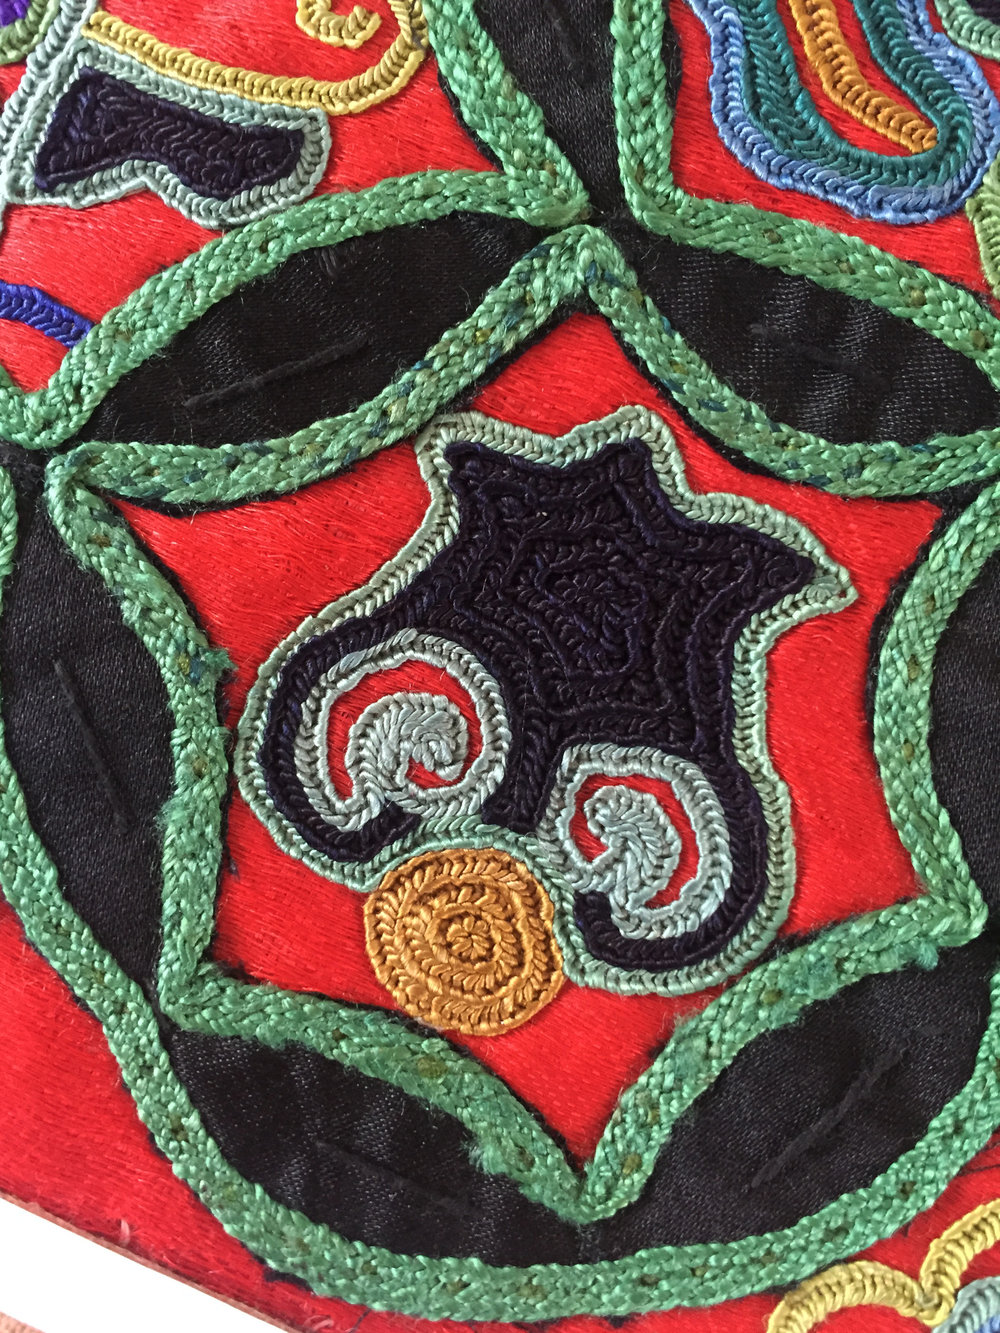 Miao embroidery with double-pulling stitch featuring guava motif from Leishan, Guizhou, China. Yang Wen Bin Collection.